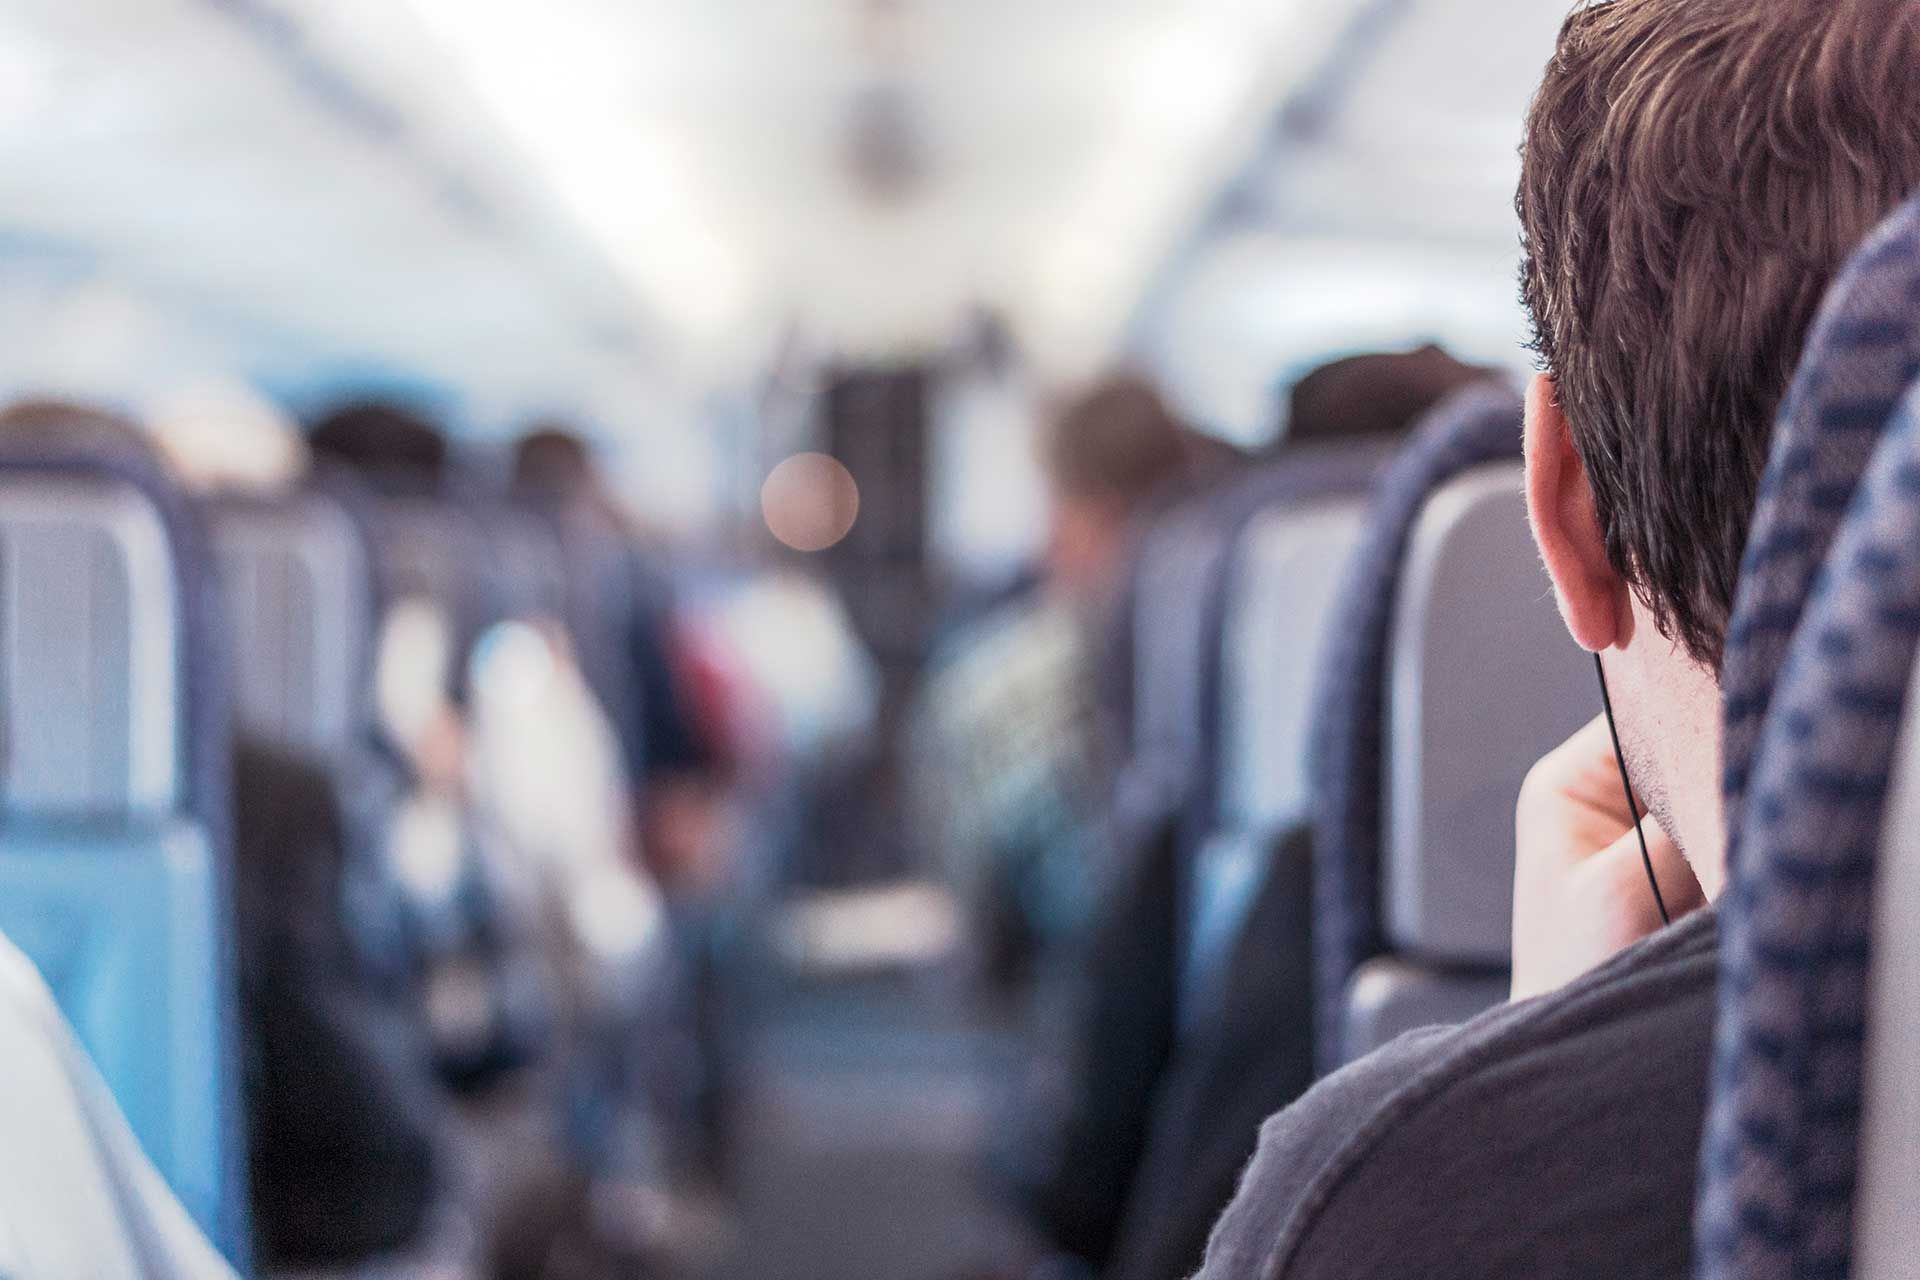 Man with headphones on a plane